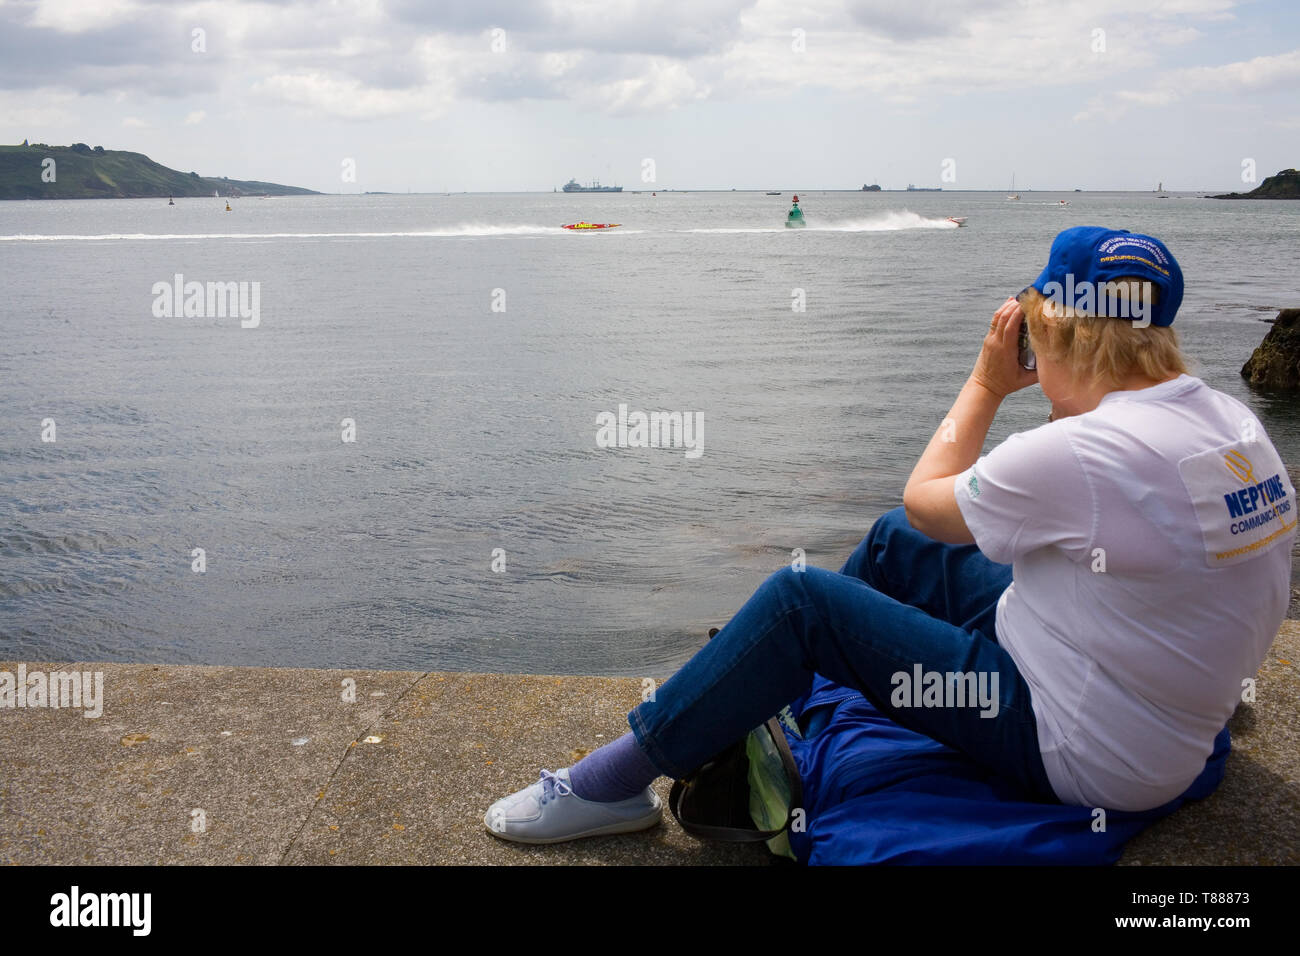 Fans watch the powerboats race across the water. Stock Photo